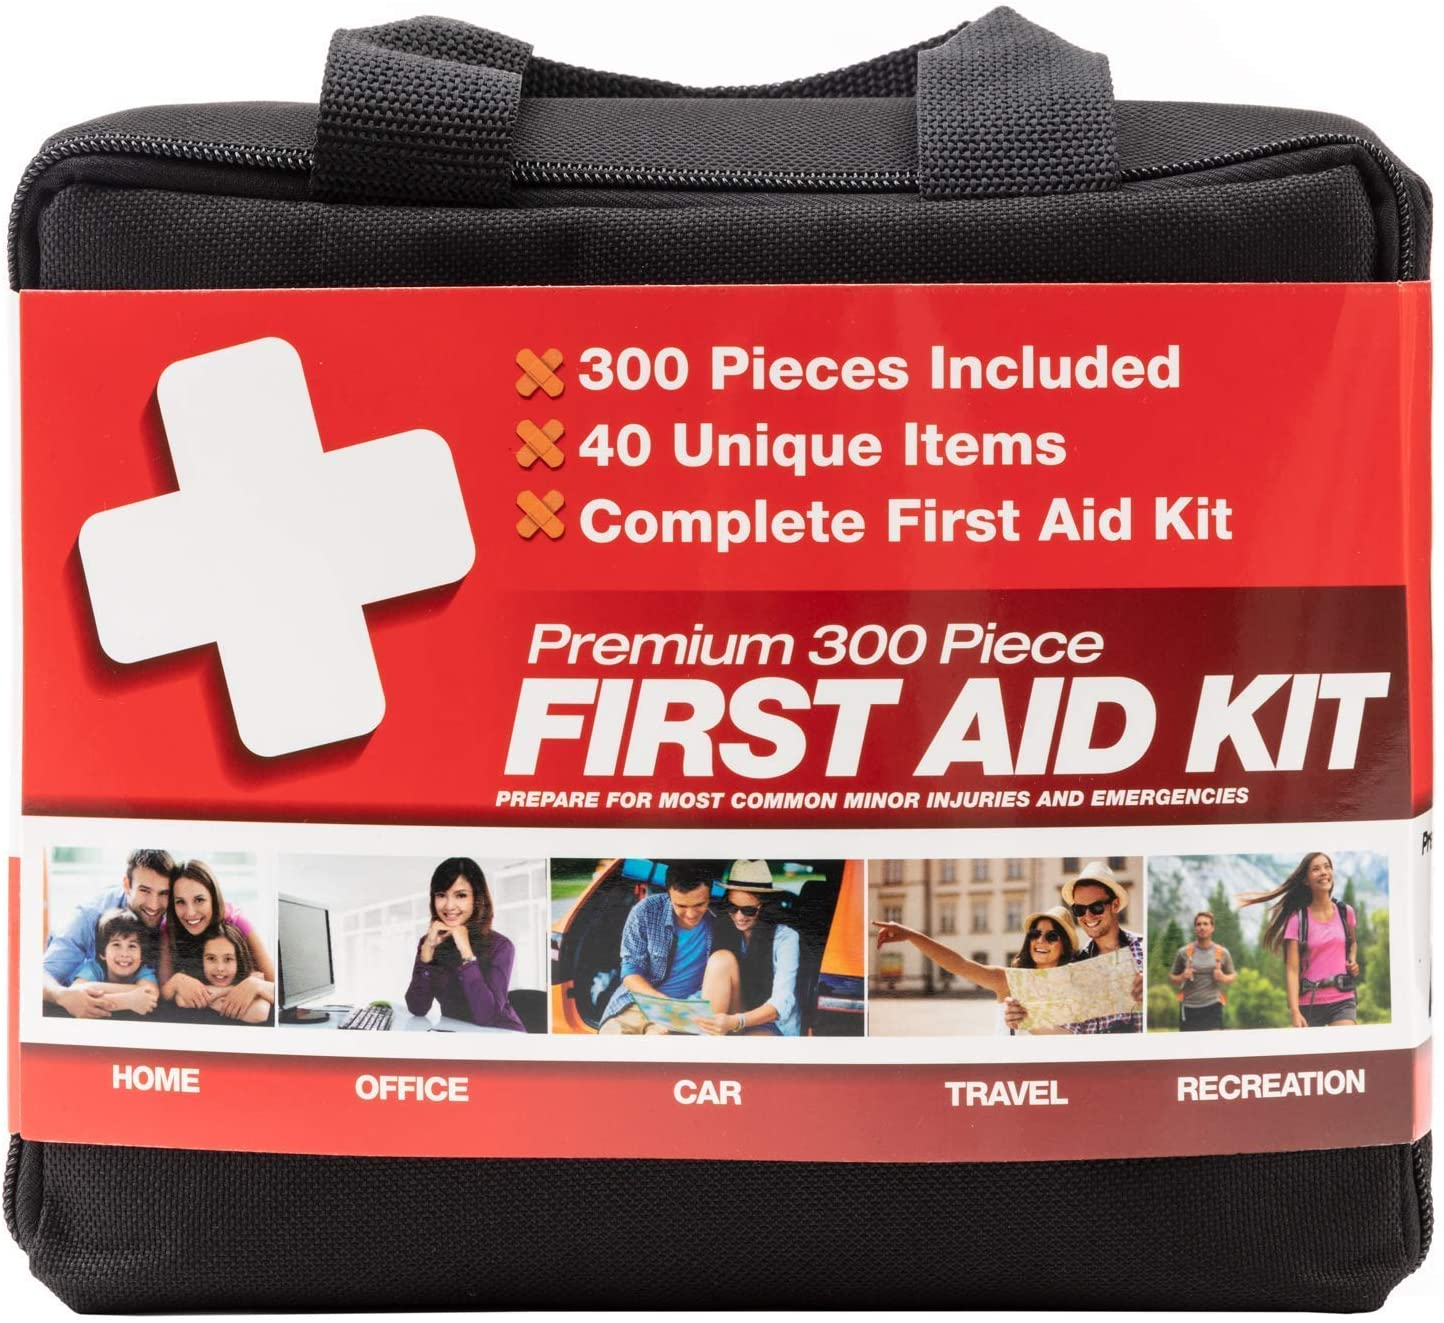 M2 BASICS First Aid Kit With Bag, 300 Piece